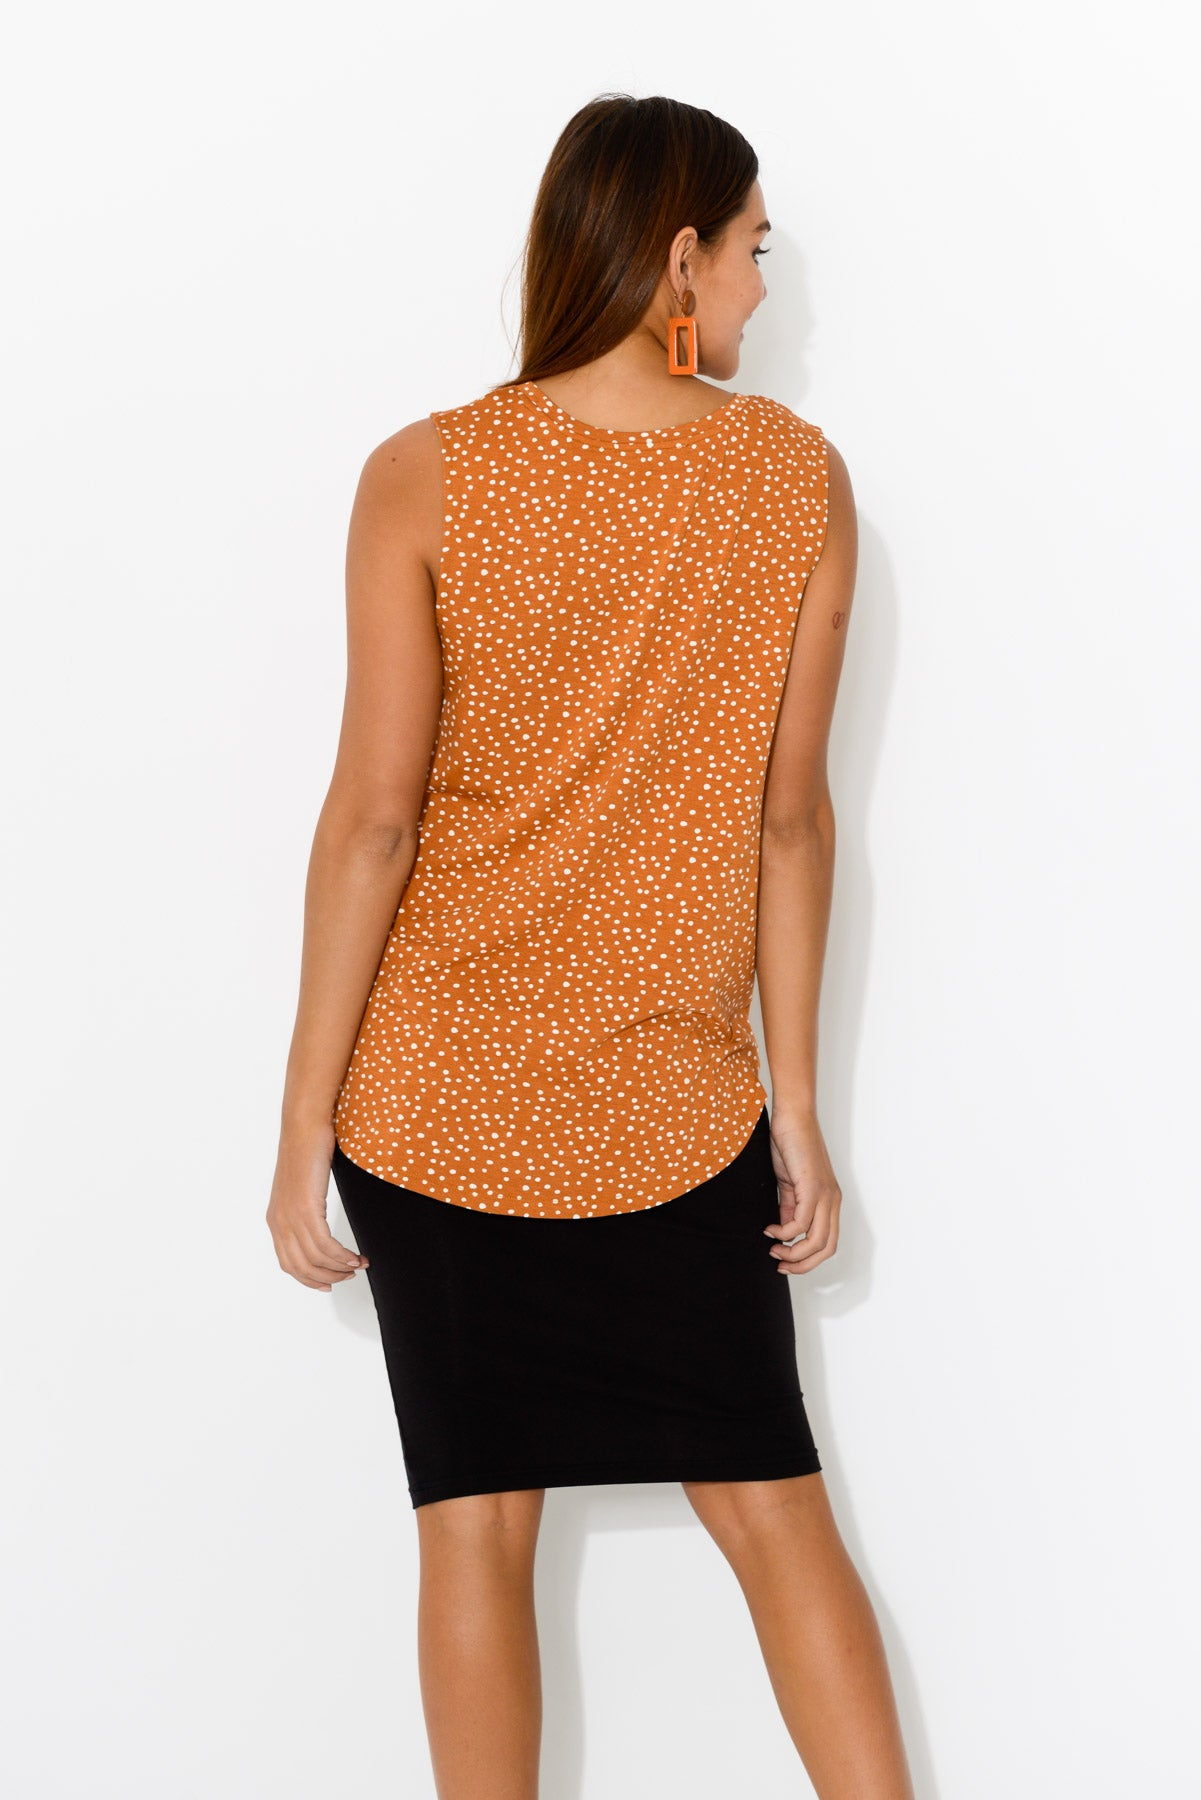 Capri Orange Spot Tank - Blue Bungalow